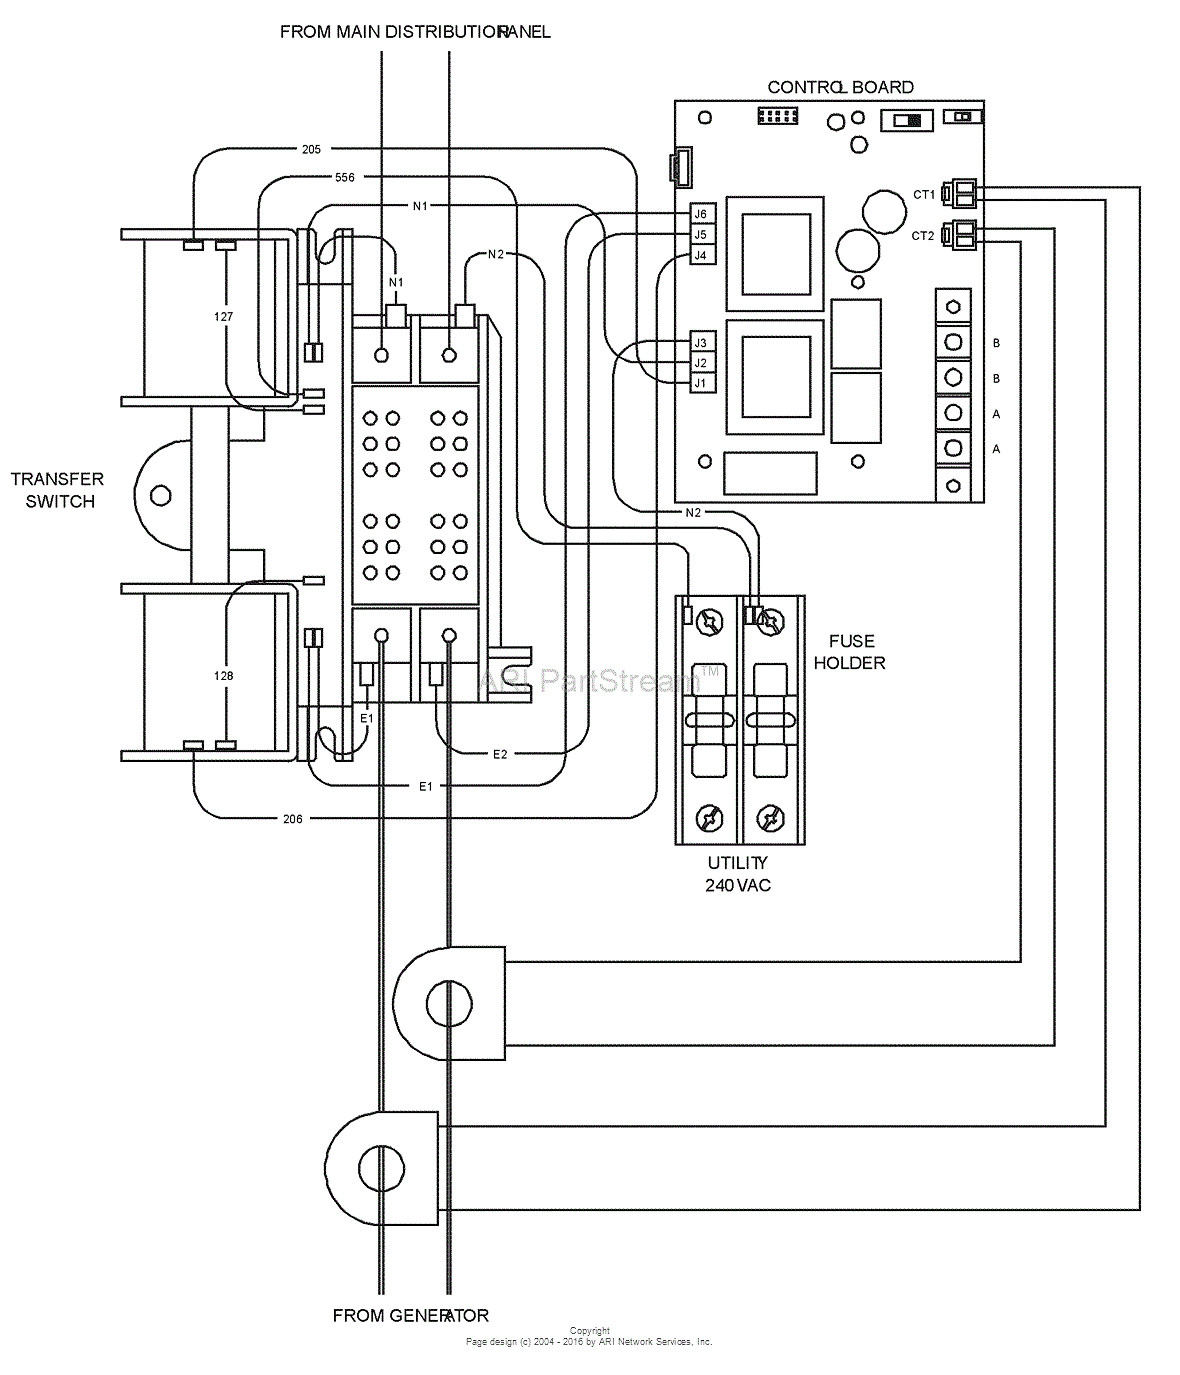 hight resolution of generac generator transfer switch wiring diagram sample wiring generac generator wiring diagrams 4375 generac generator transfer